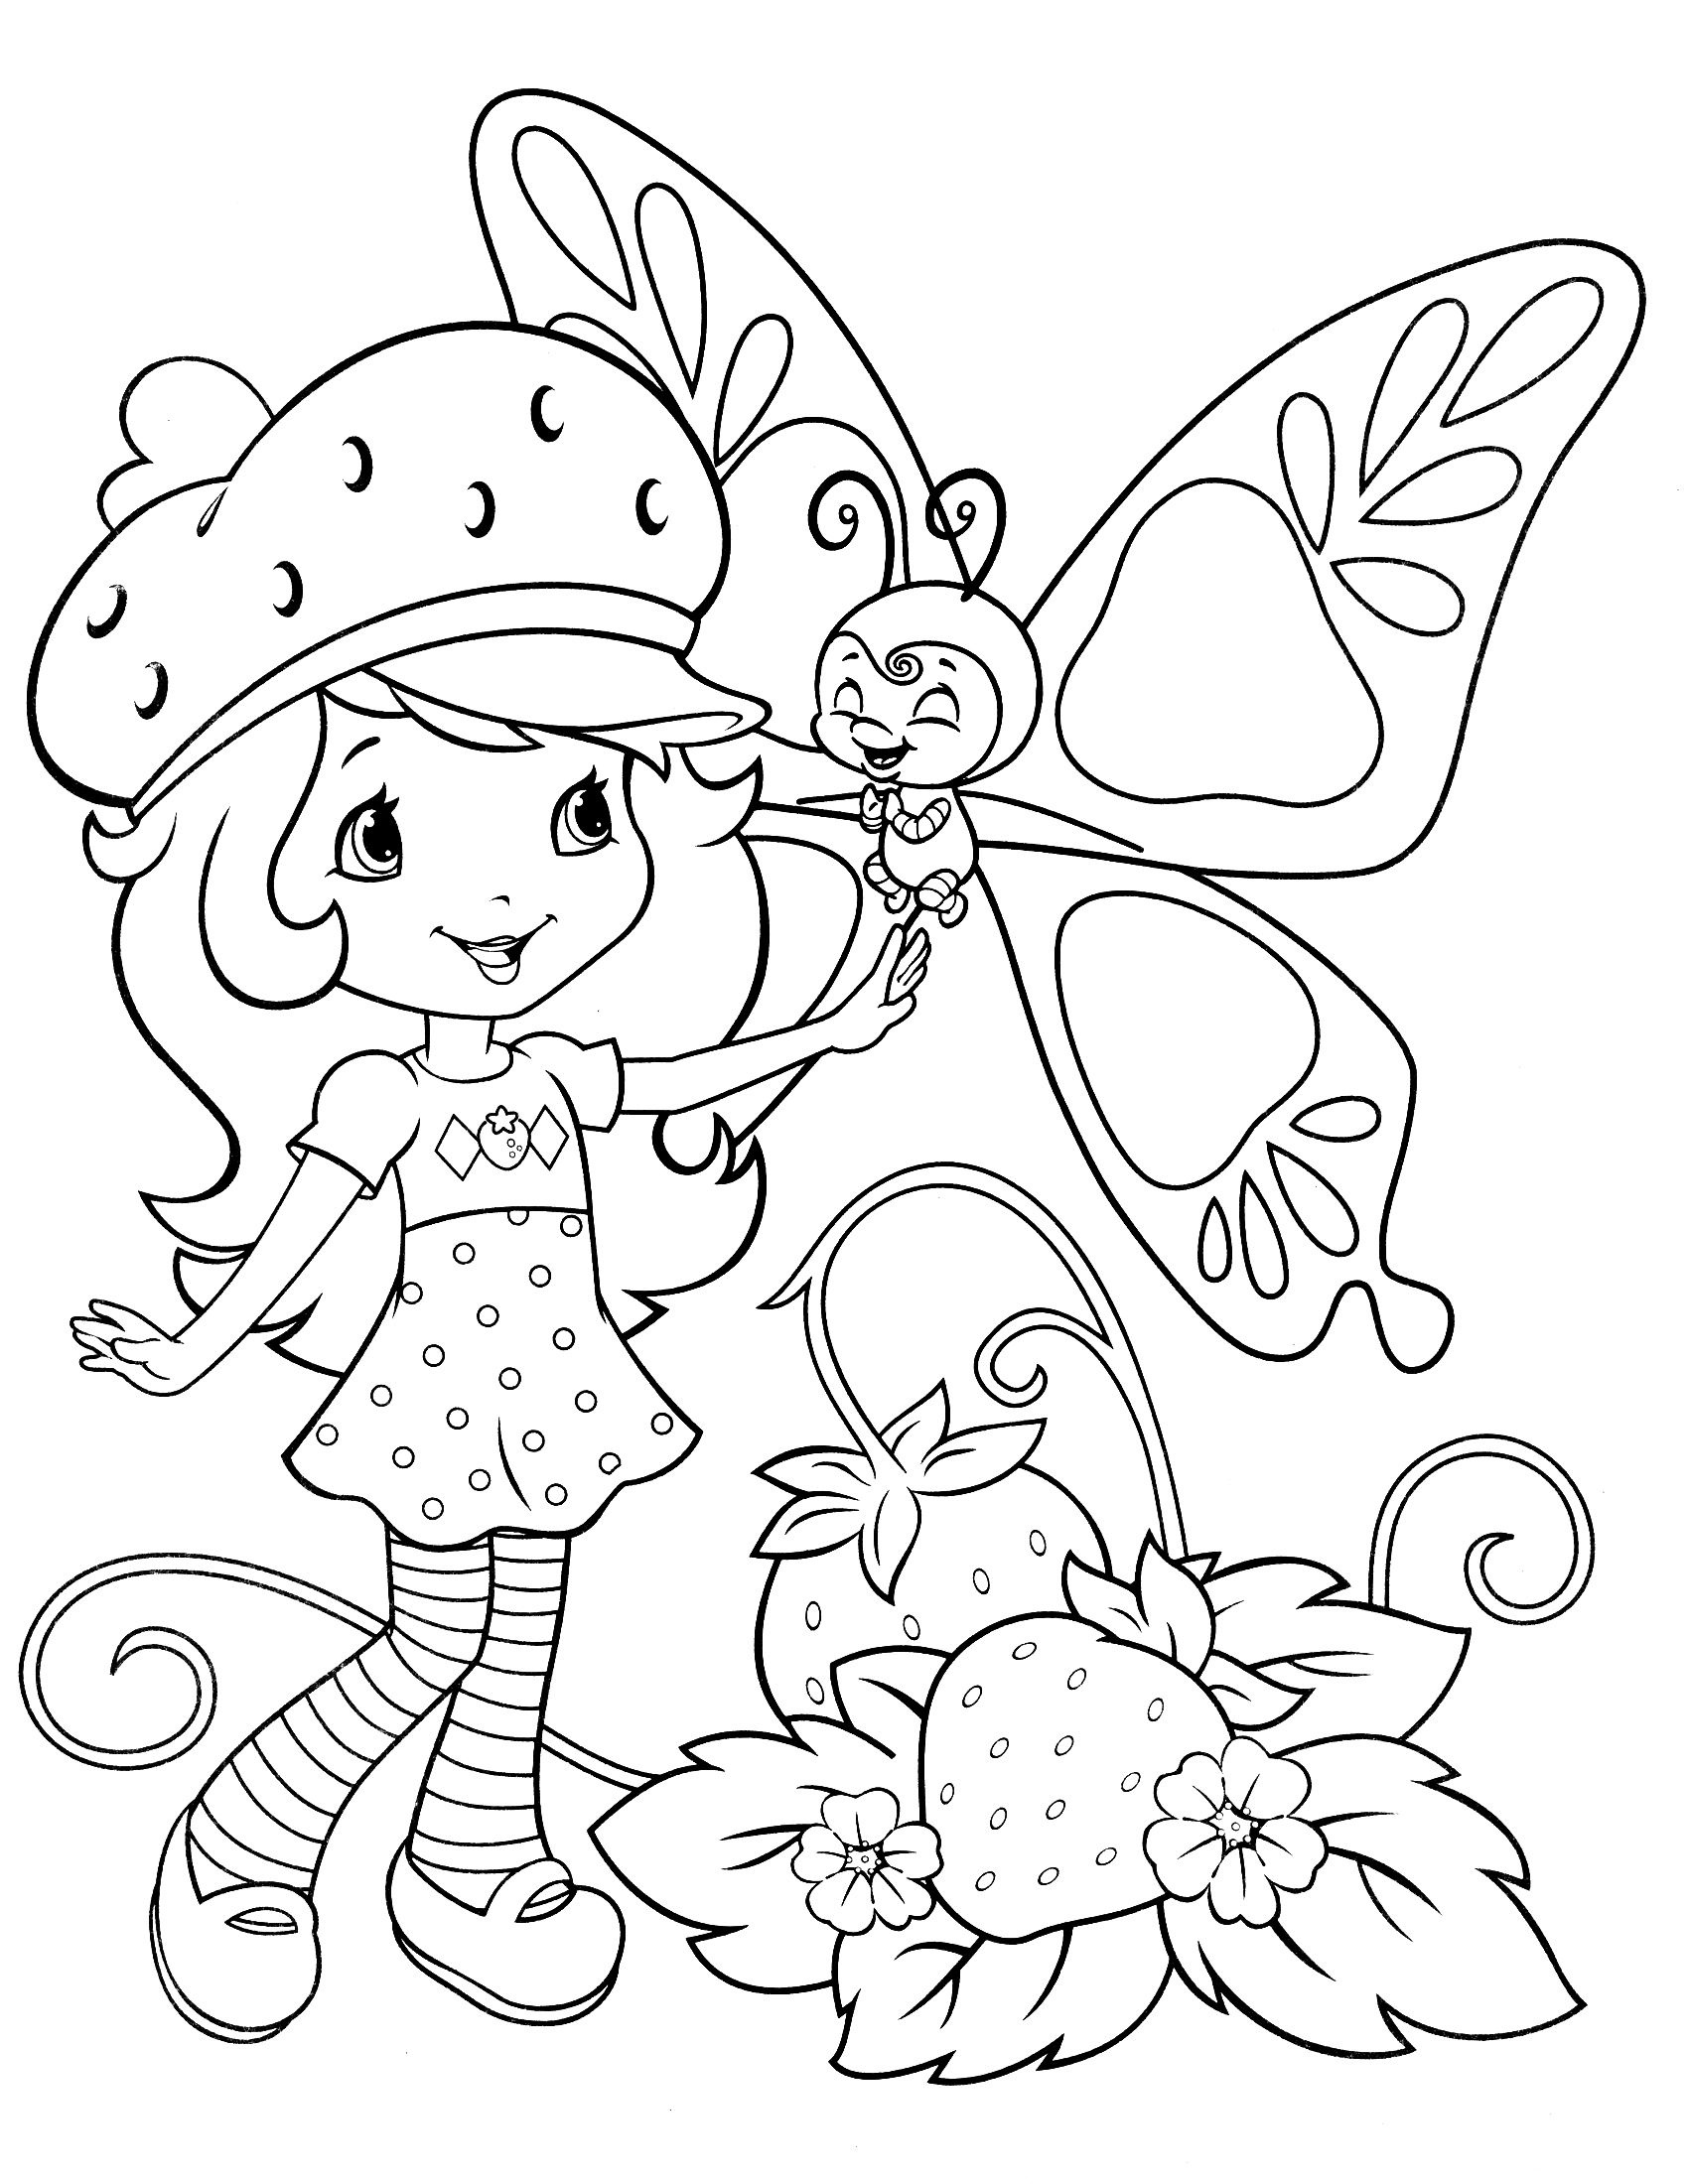 Top 20 Free Printable Strawberry Shortcake Coloring Pages - Strawberry Shortcake Coloring Pages Free Printable